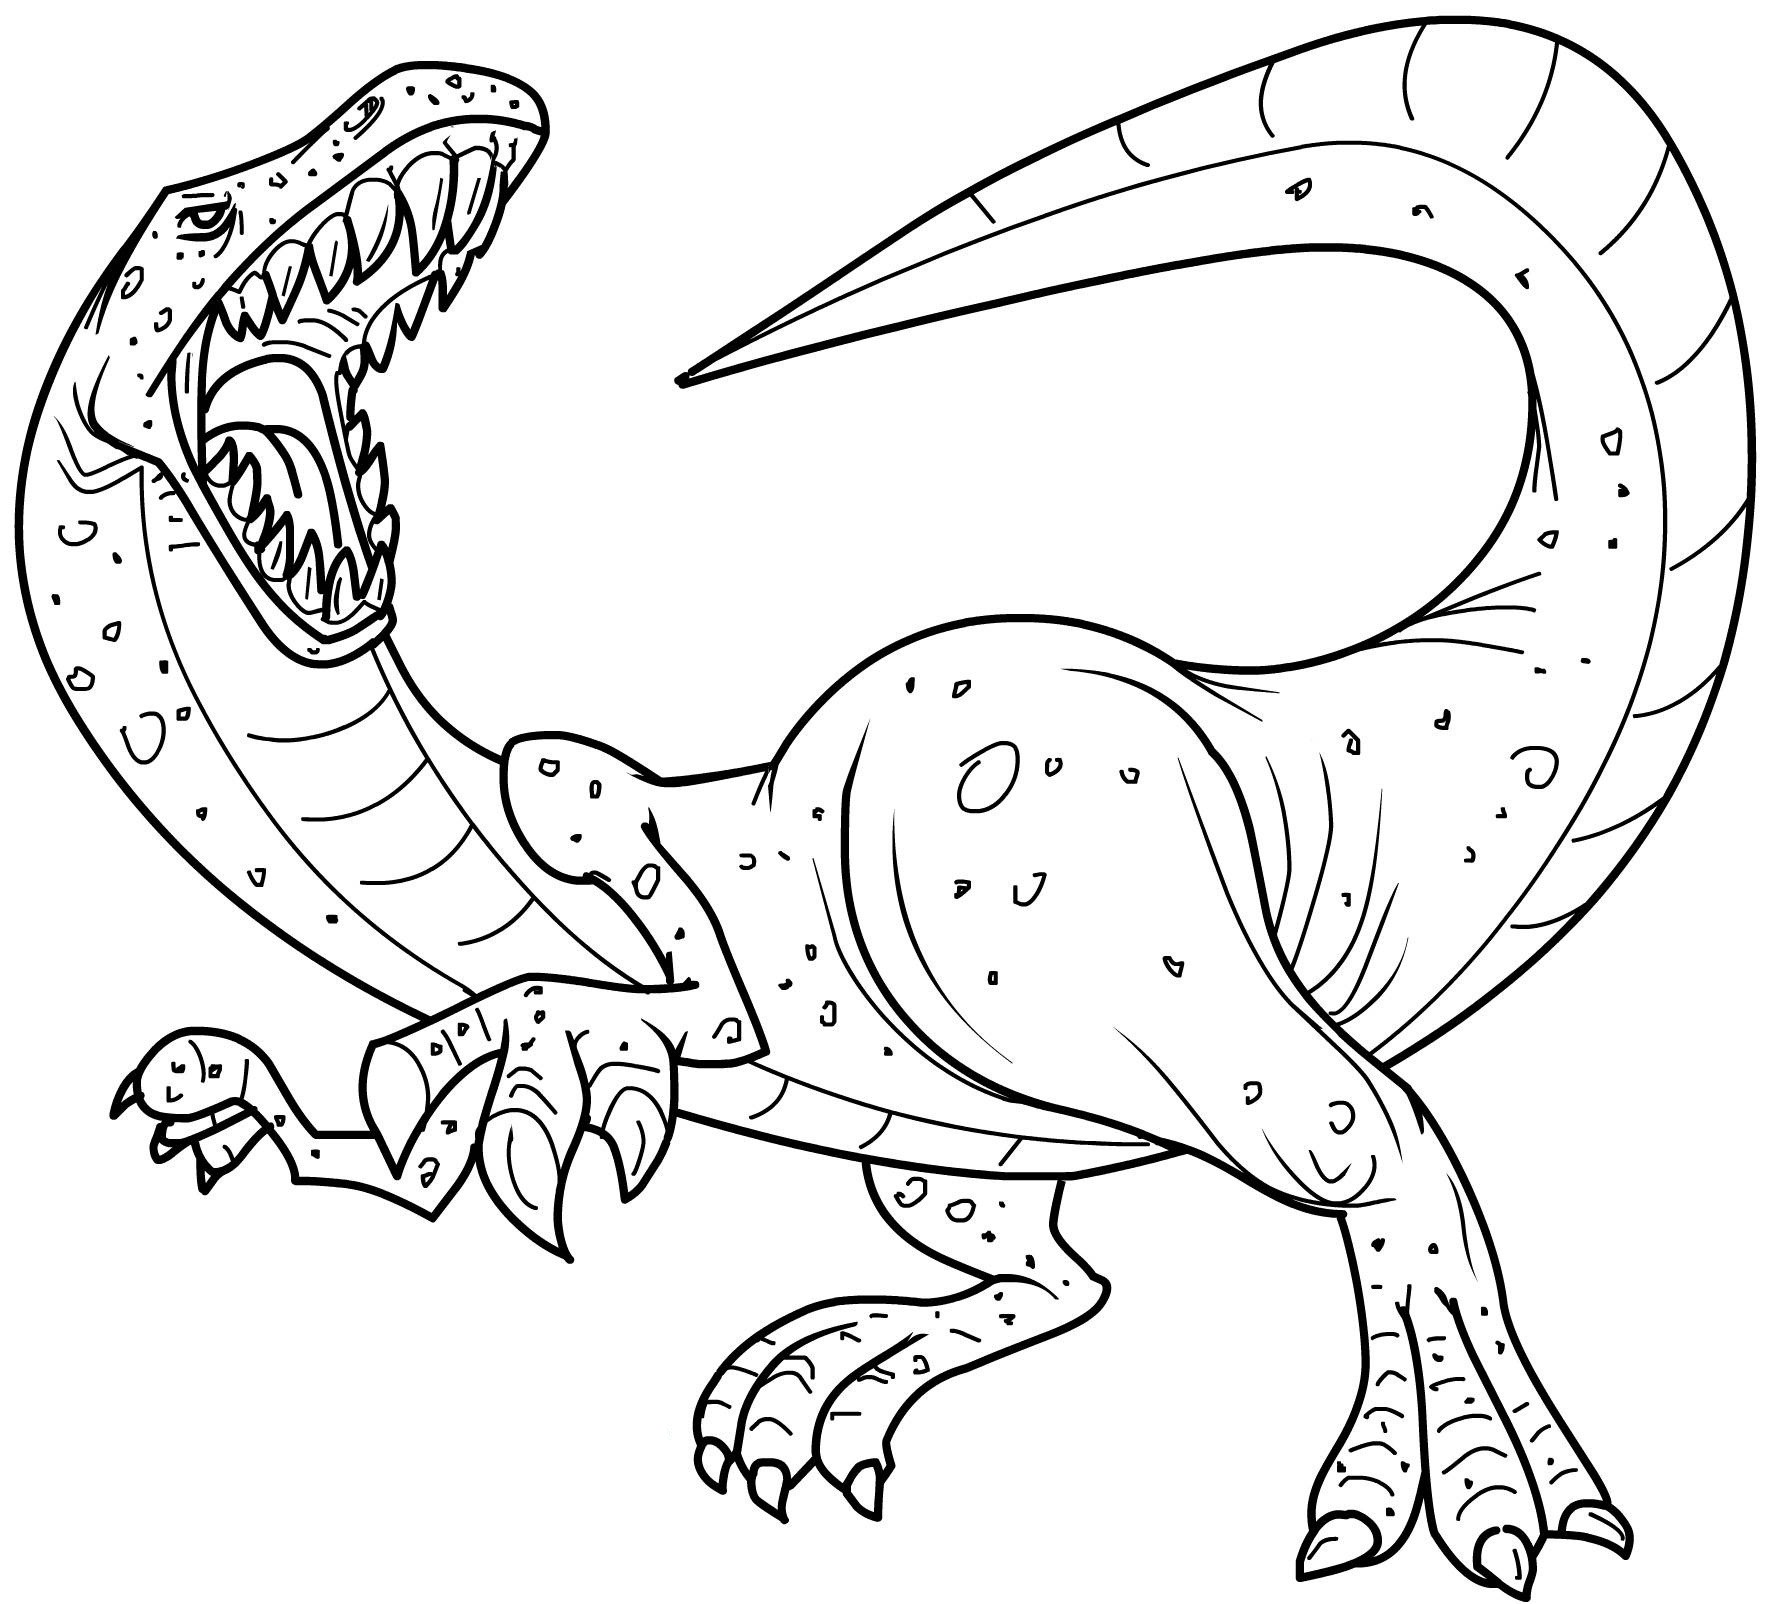 free printable dinosaur coloring pages for kids. Black Bedroom Furniture Sets. Home Design Ideas